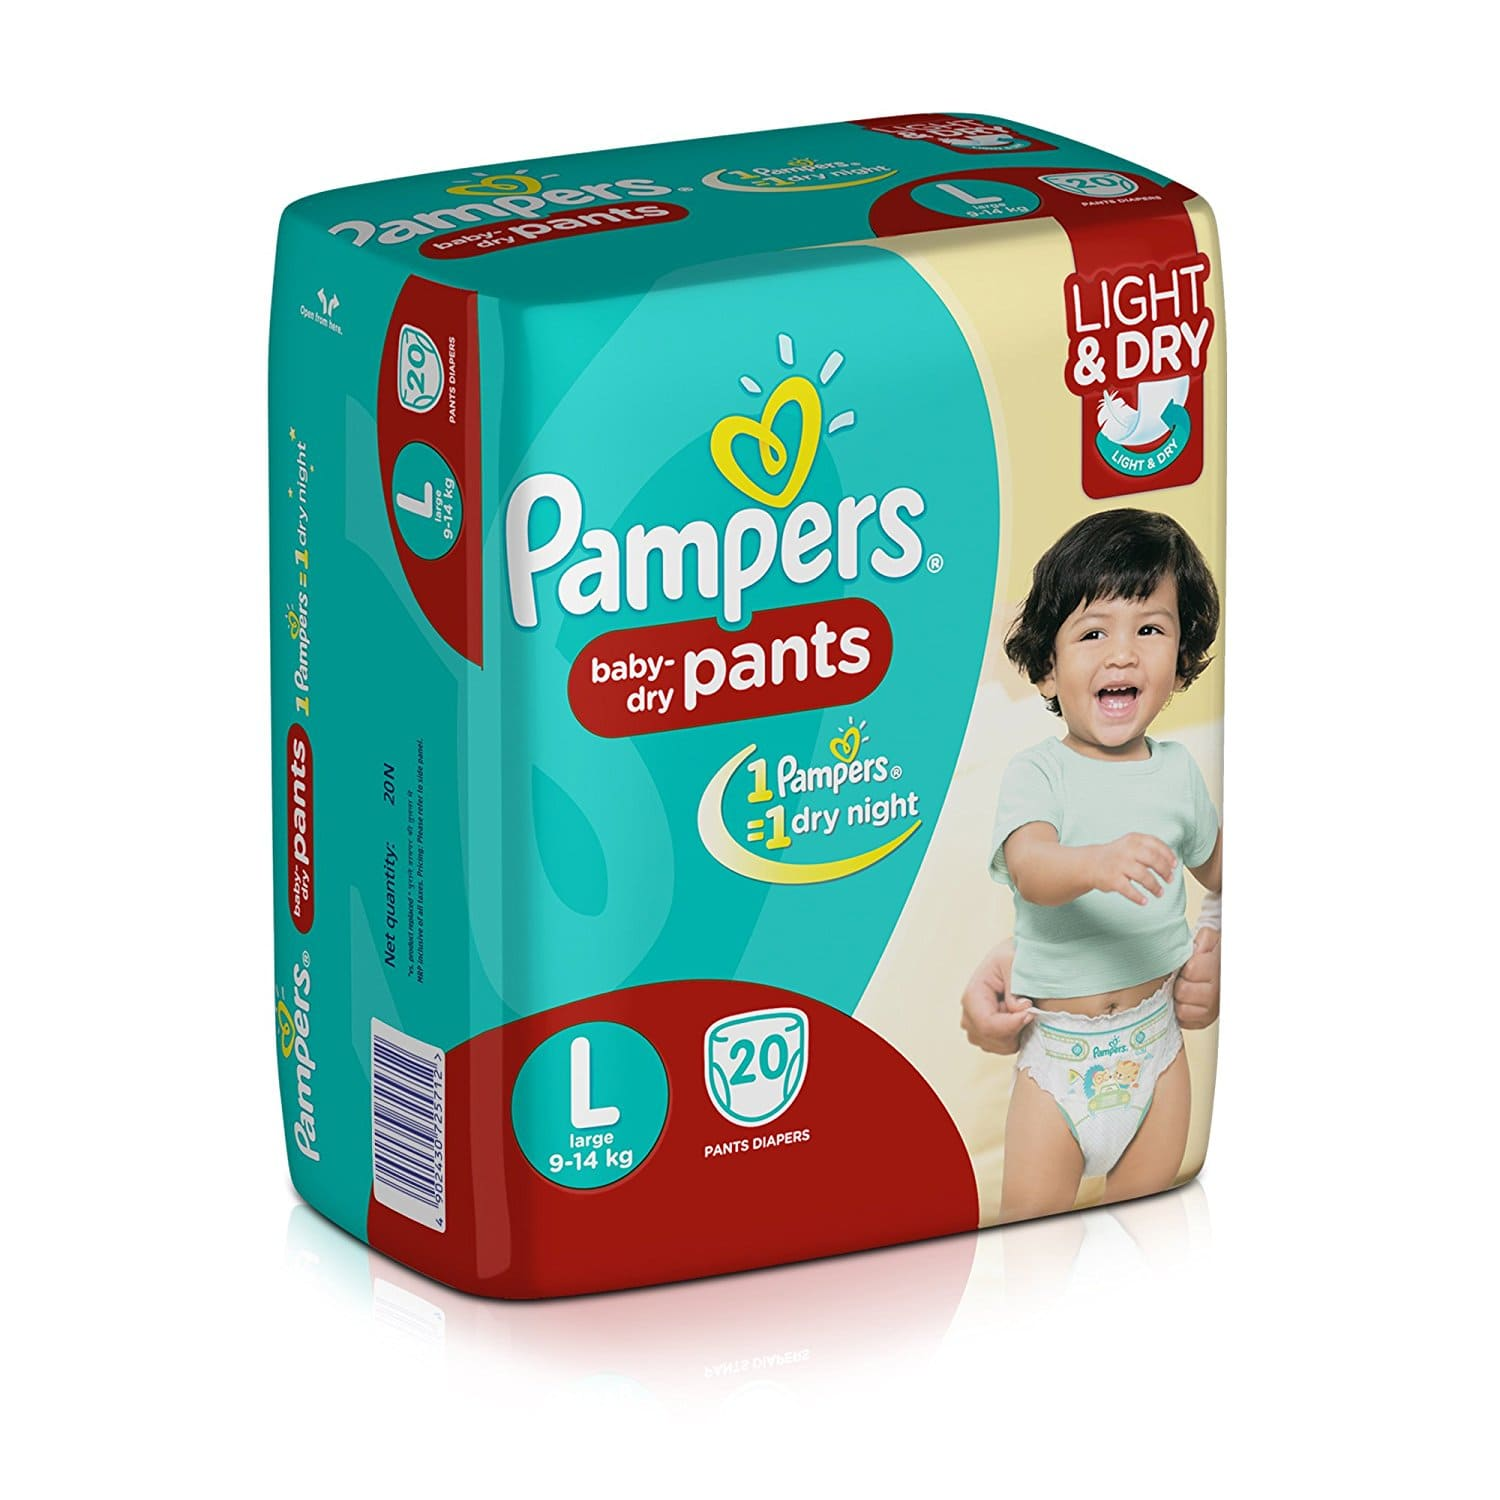 Pampers Large Size Diapers (20 Count)